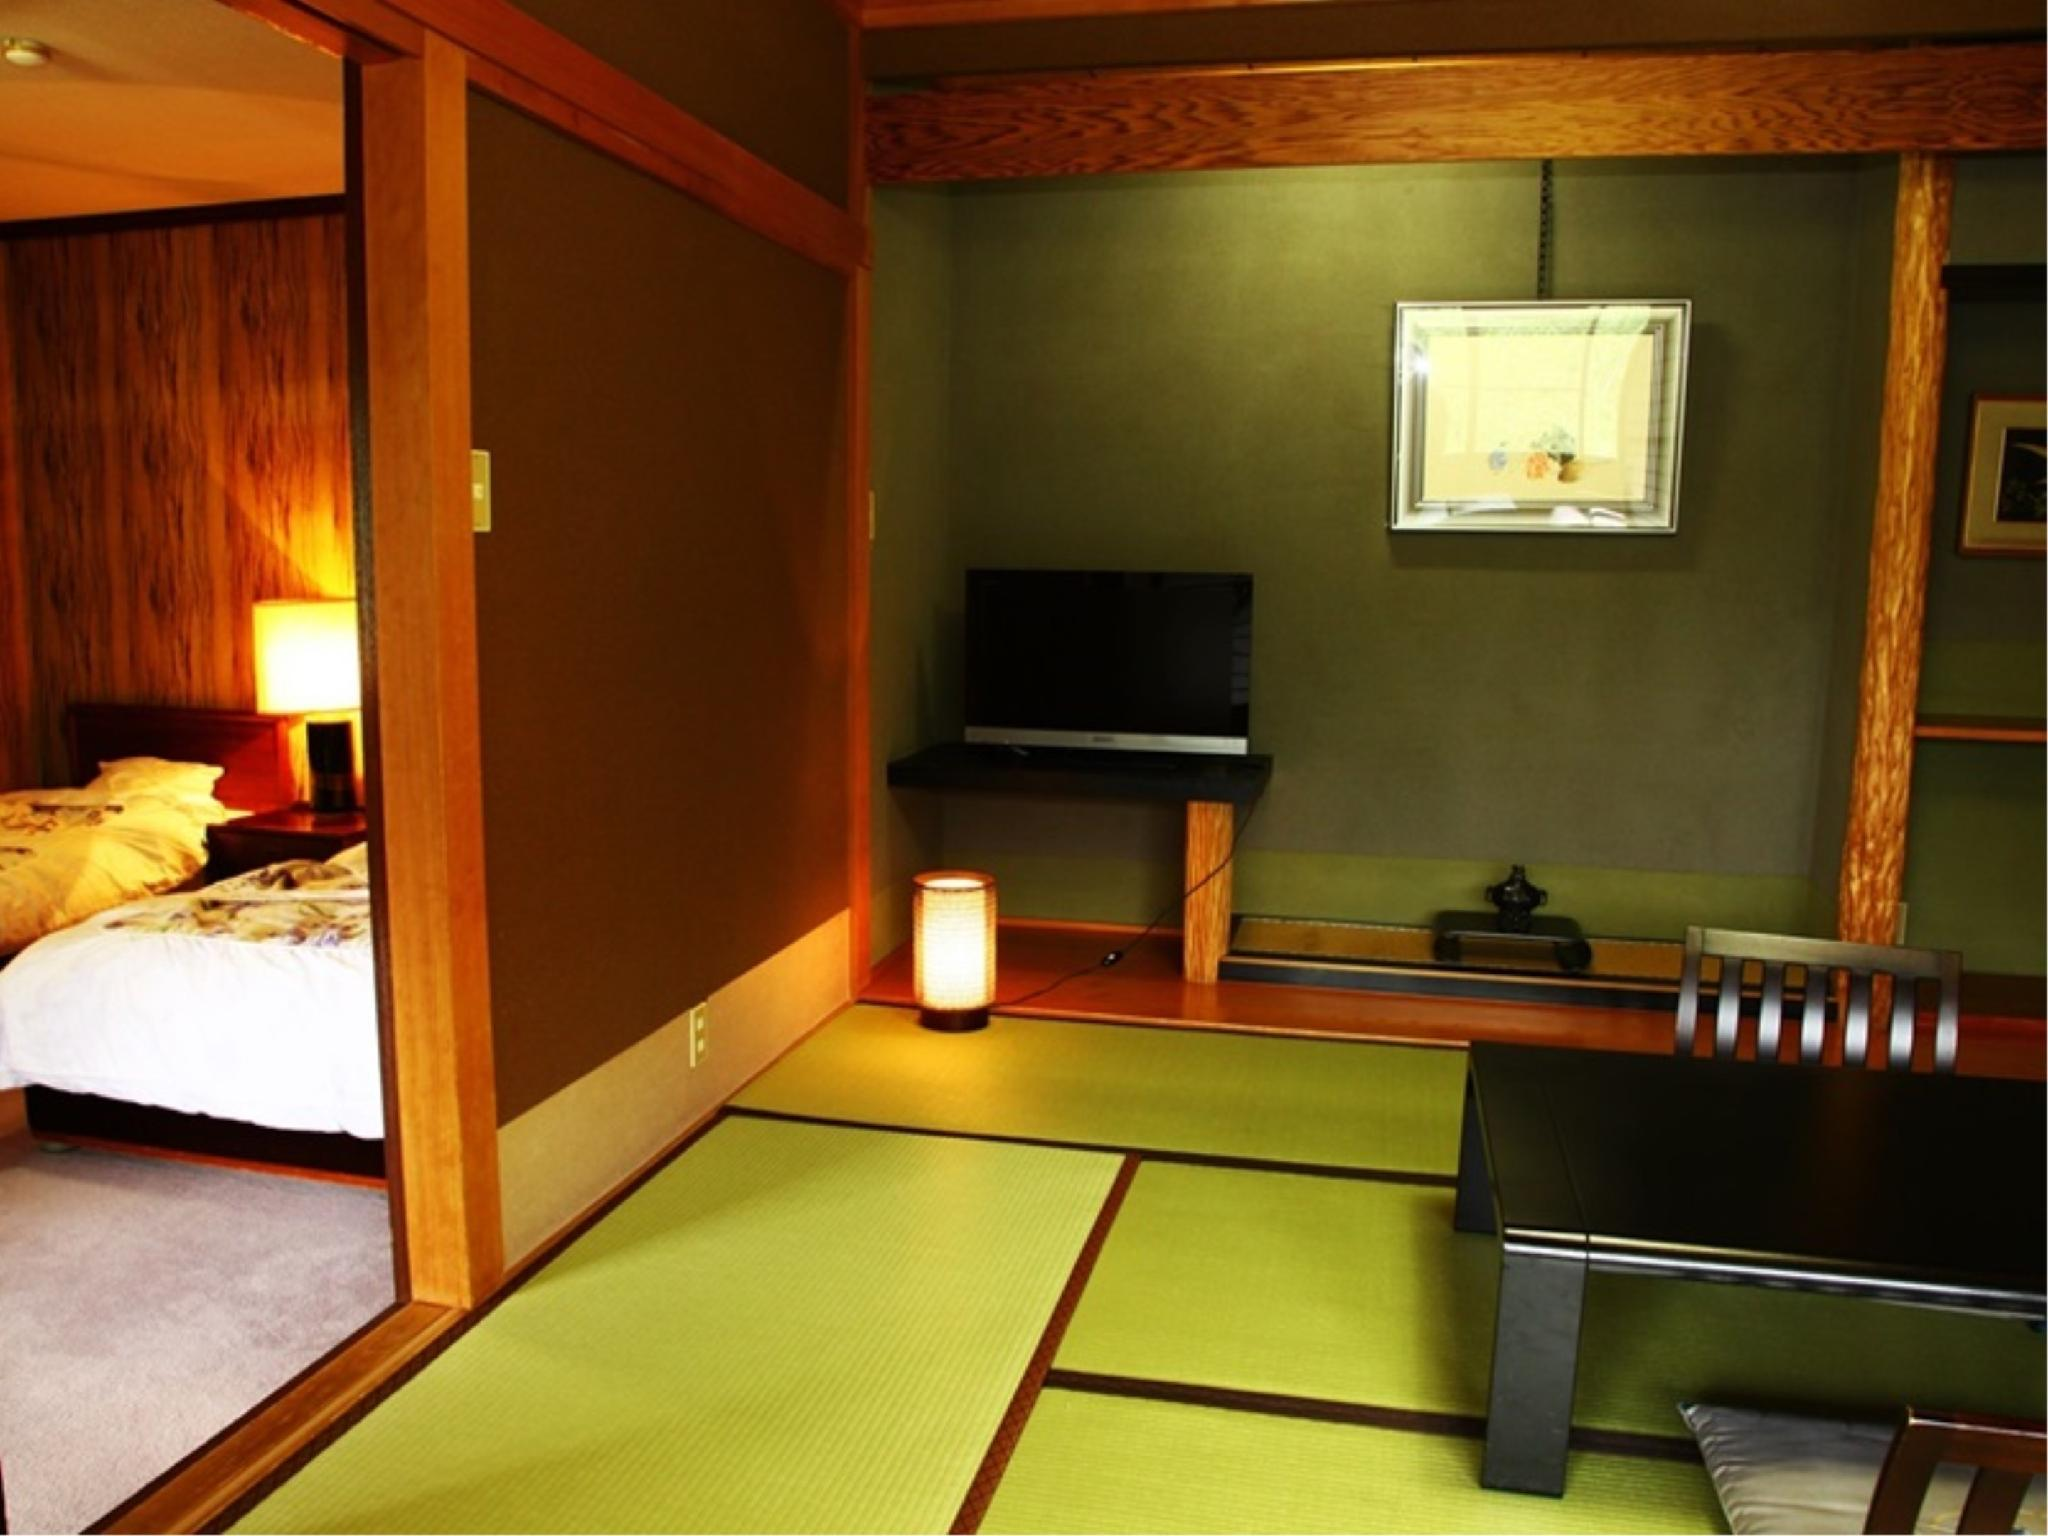 다다미 침대 객실 (Special Japanese/Western-style Room (2 Beds, Main Building))